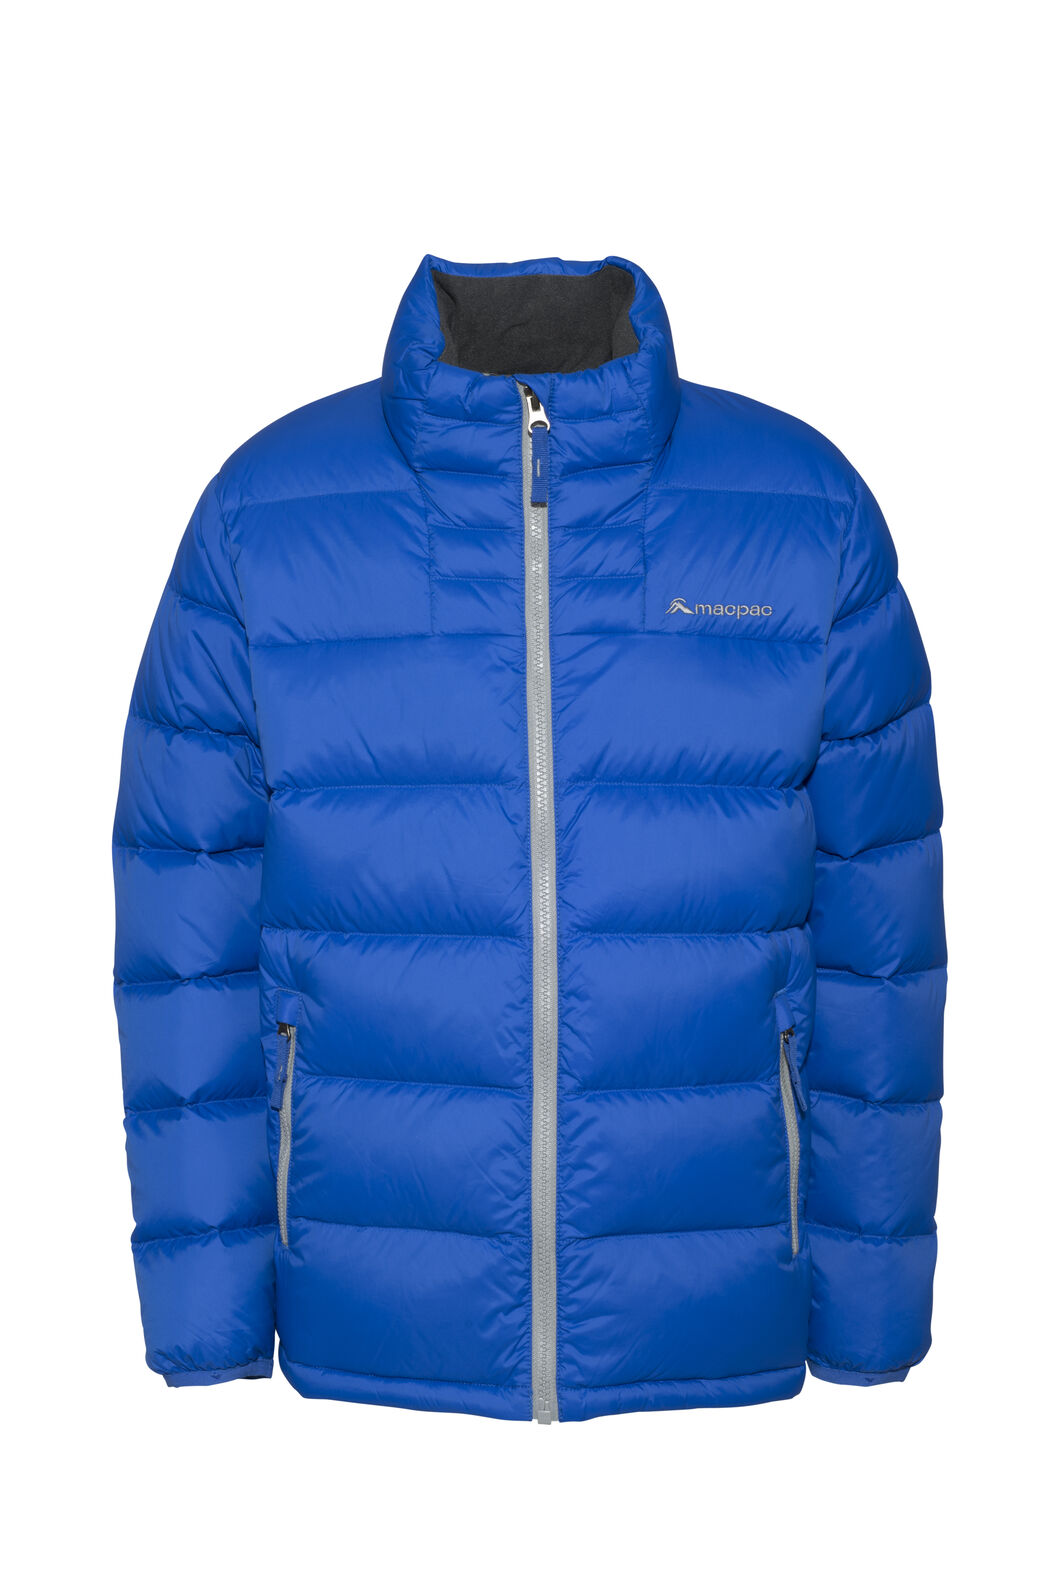 Macpac Atom Down Jacket — Kids', Nautical Blue, hi-res